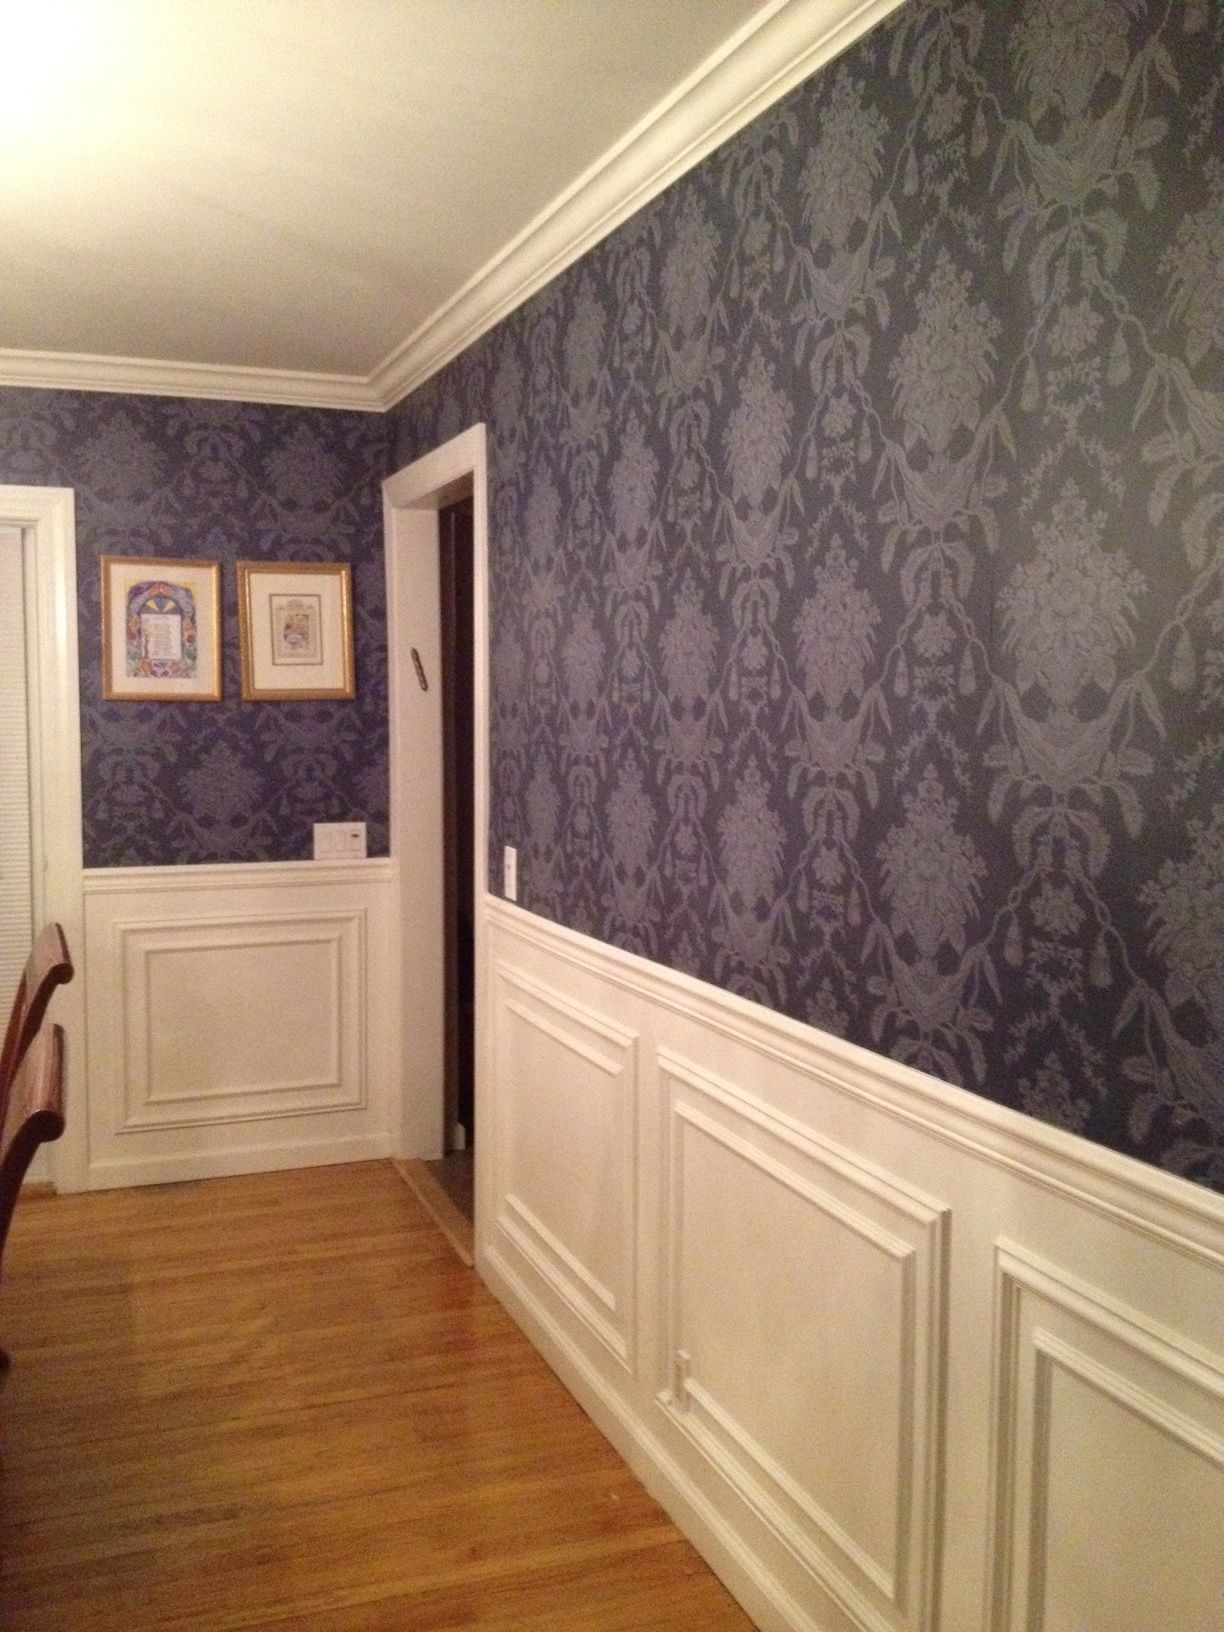 I love my Dining Room. Navy blue damask wall paper and new